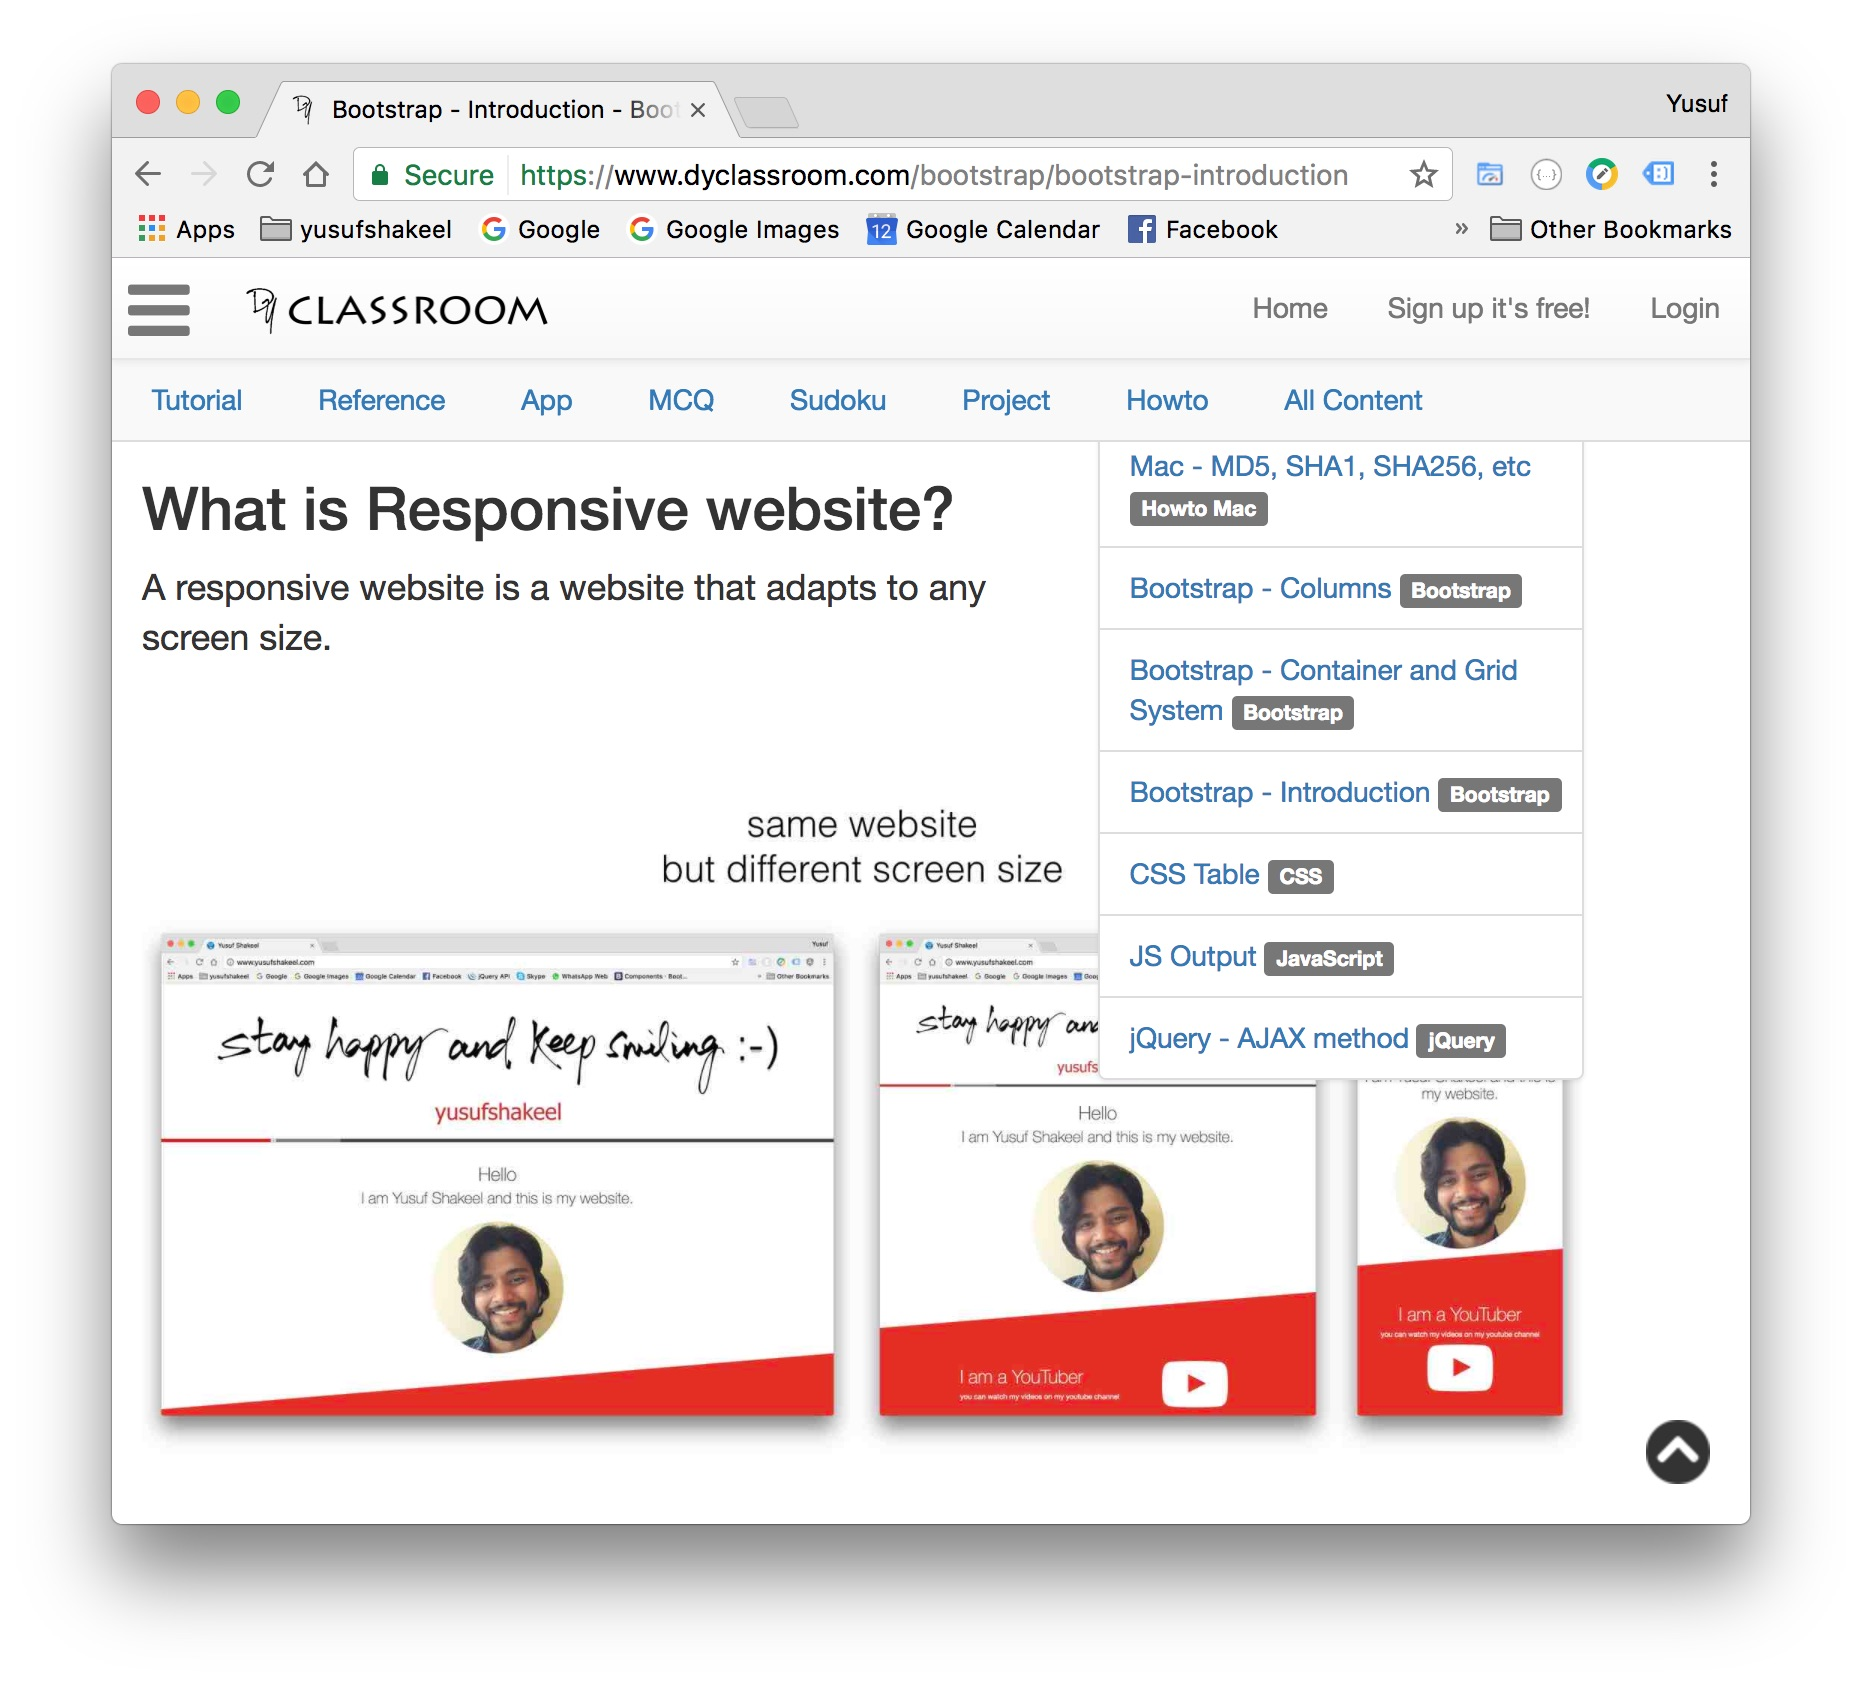 Bootstrap - Images - Bootstrap - DYclassroom | Have fun